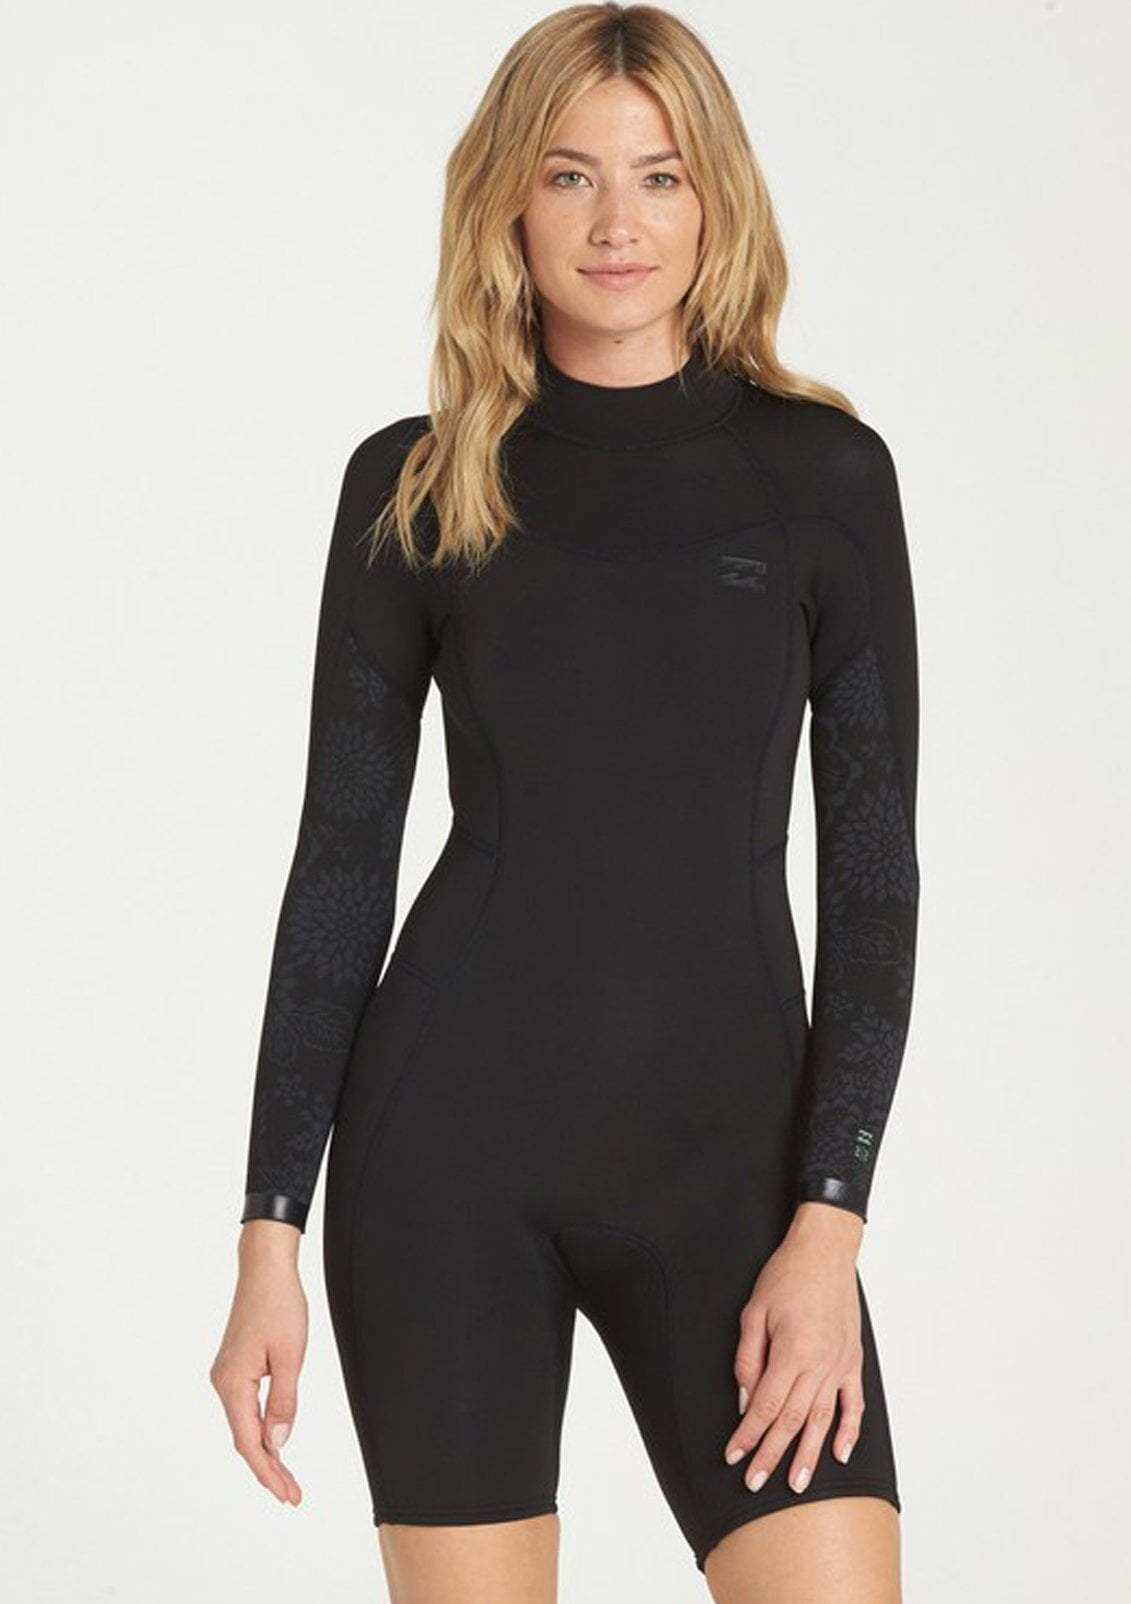 Billabong Women's Synergy BZ LS Springsuit